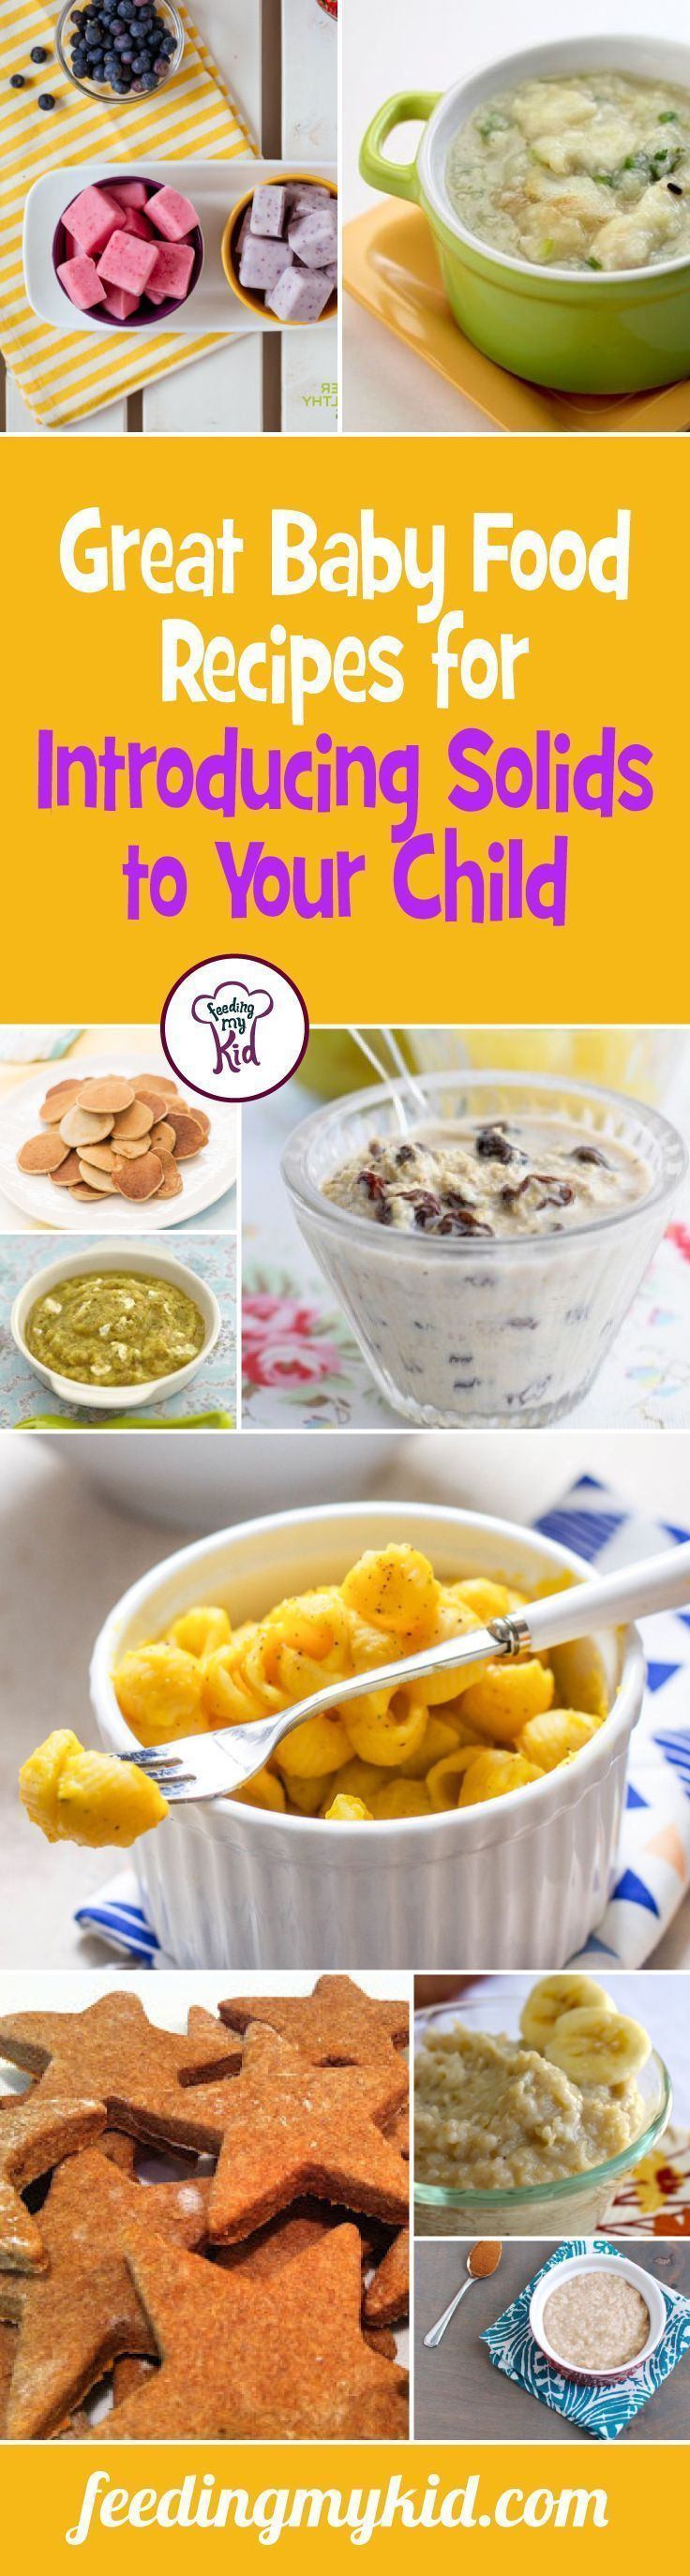 Great Baby Food Recipes for Introducing Solids to Your ...